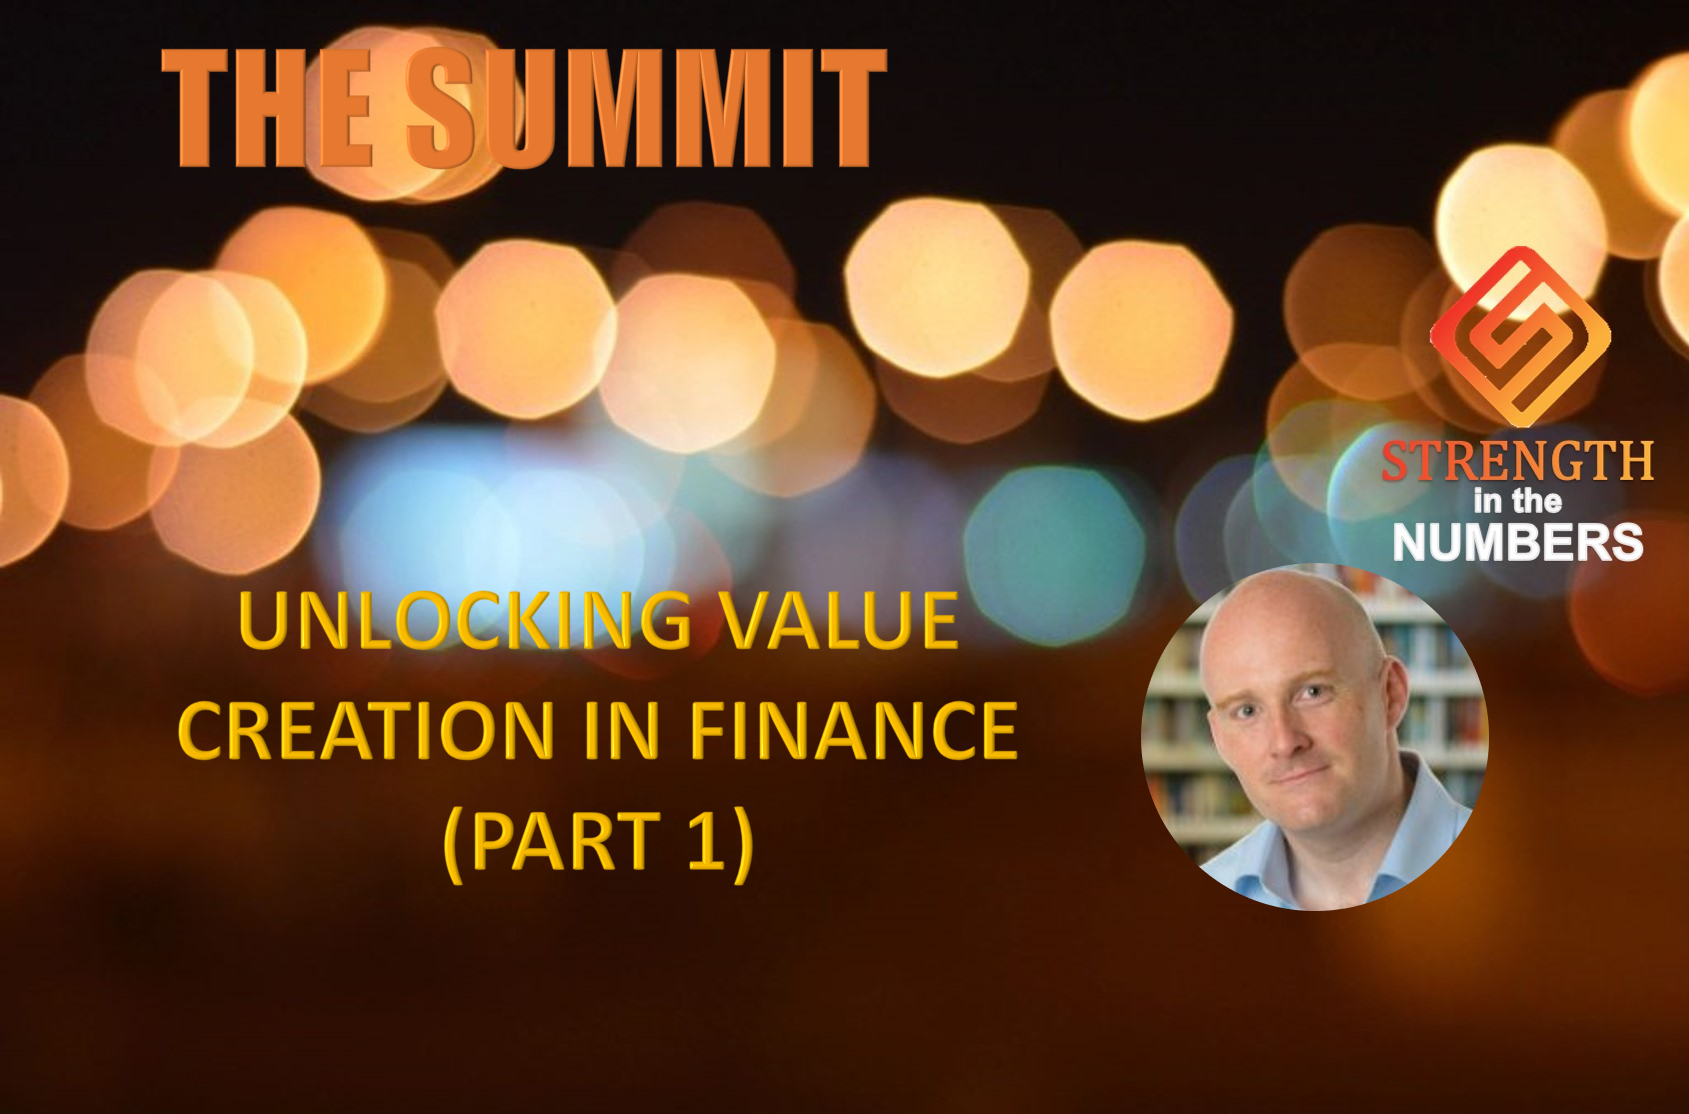 Unlocking Value Creation in Finance (Part 1)